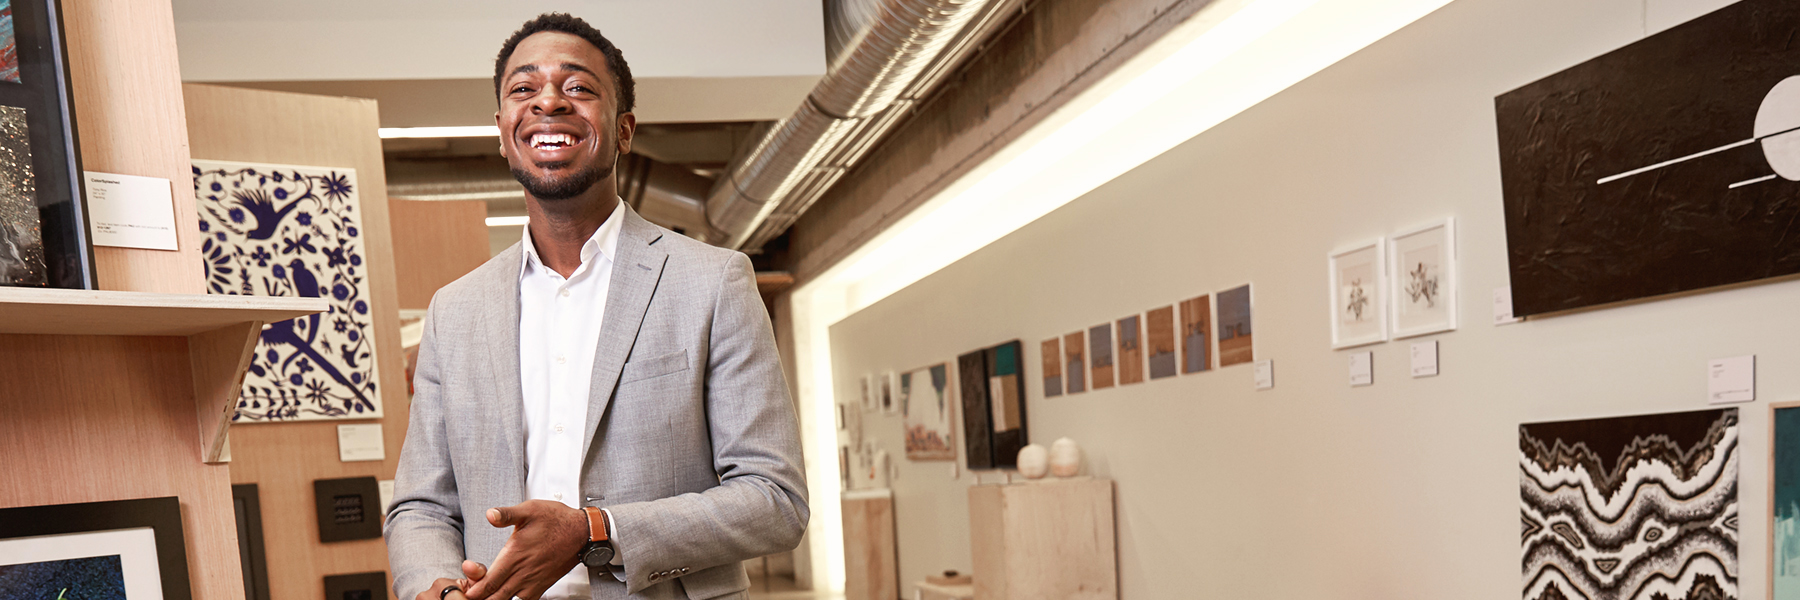 Byron Sanders visits Fossil Group headquarters in Dallas for an interview